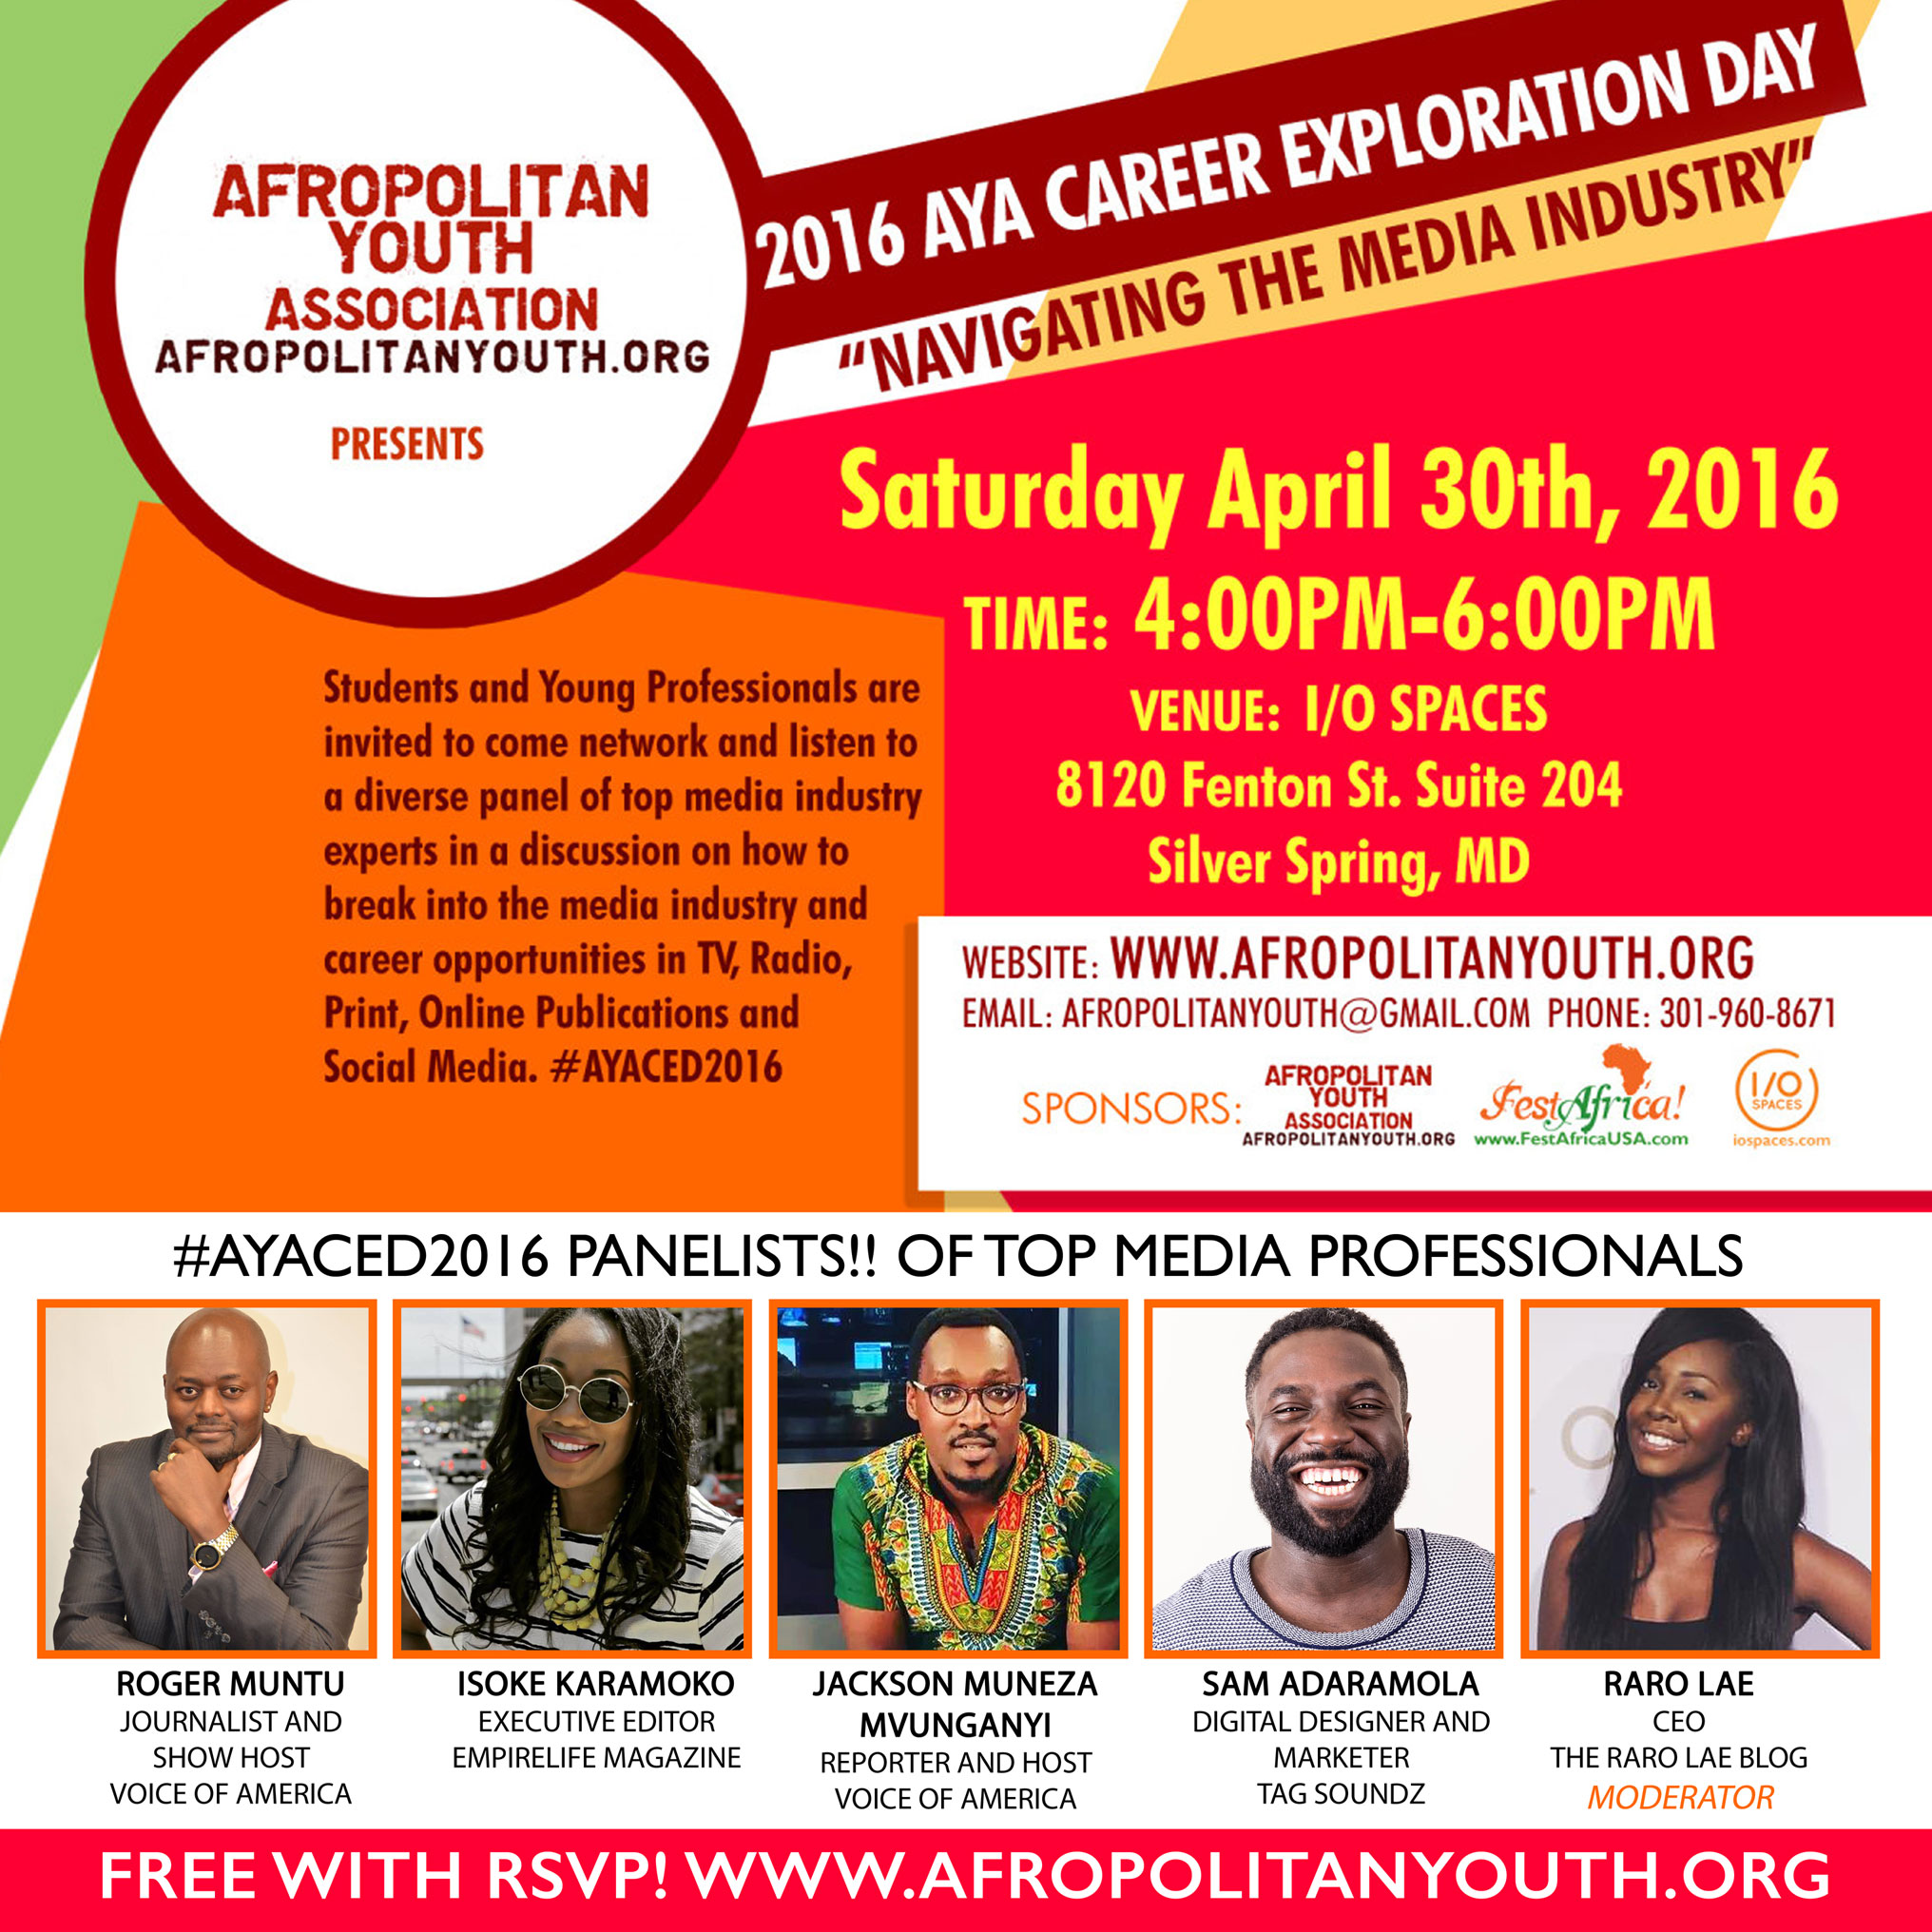 Afropolitan Youth - Career Day